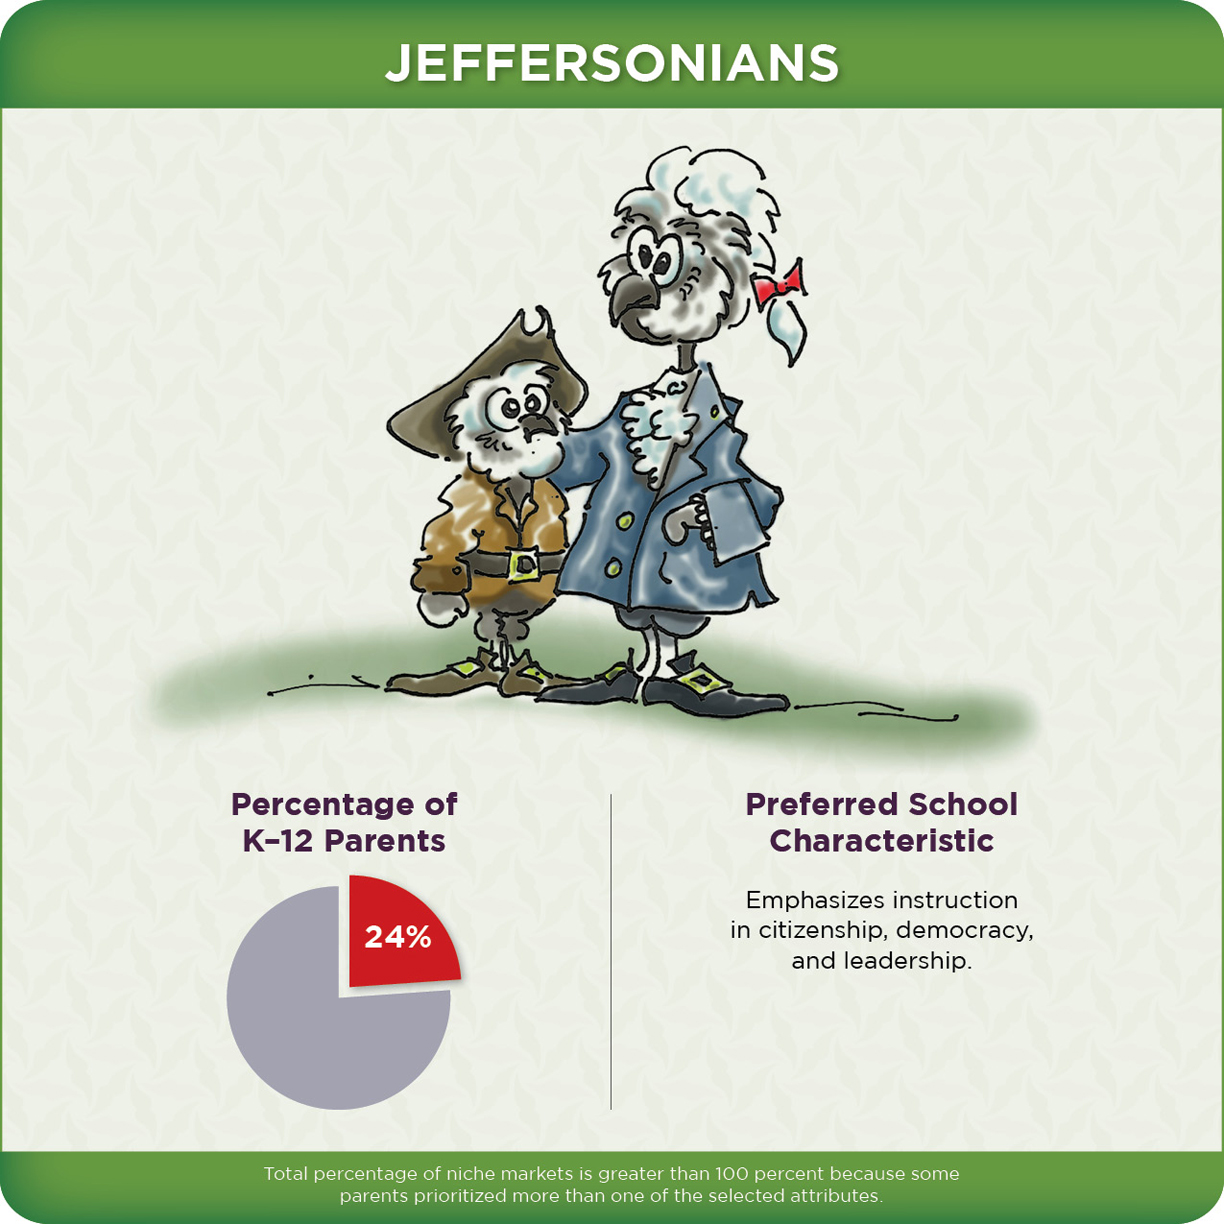 Jeffersonians